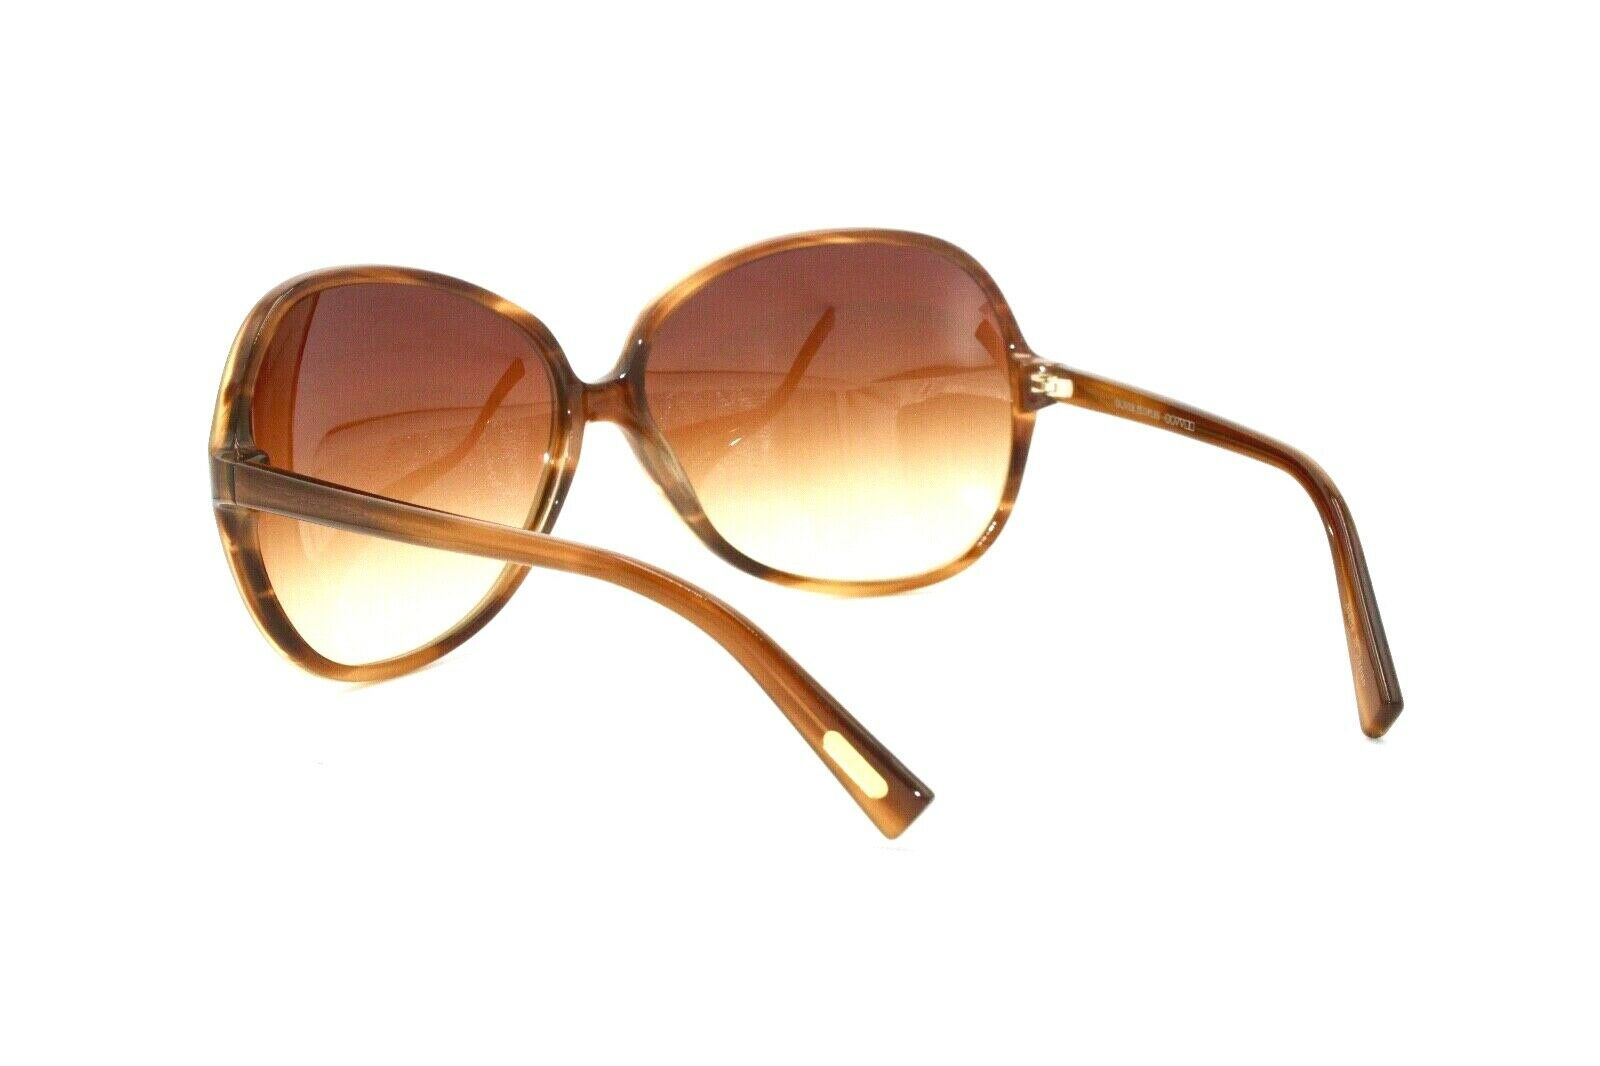 Oliver Peoples Sunglasses 69 15-125 Chelsea SYC Made in Japan - Mydesigneroptic